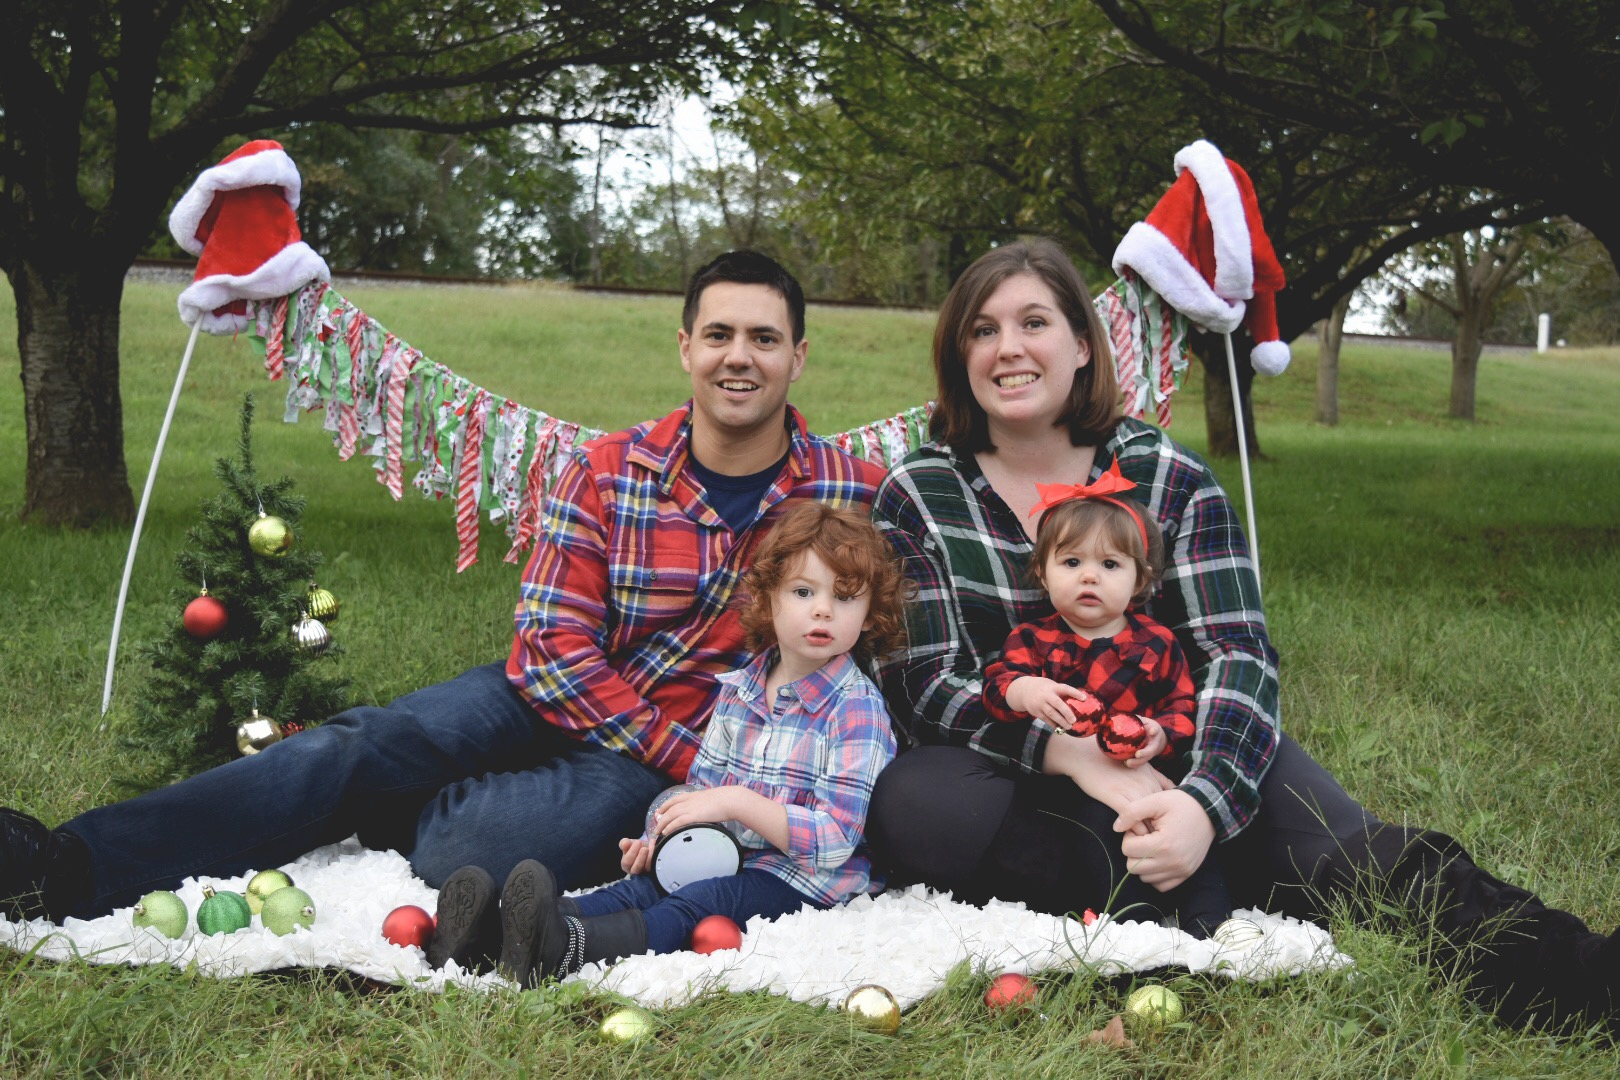 The Lockwood Family - I was delighted to see this loving family back for Christmas mini's!